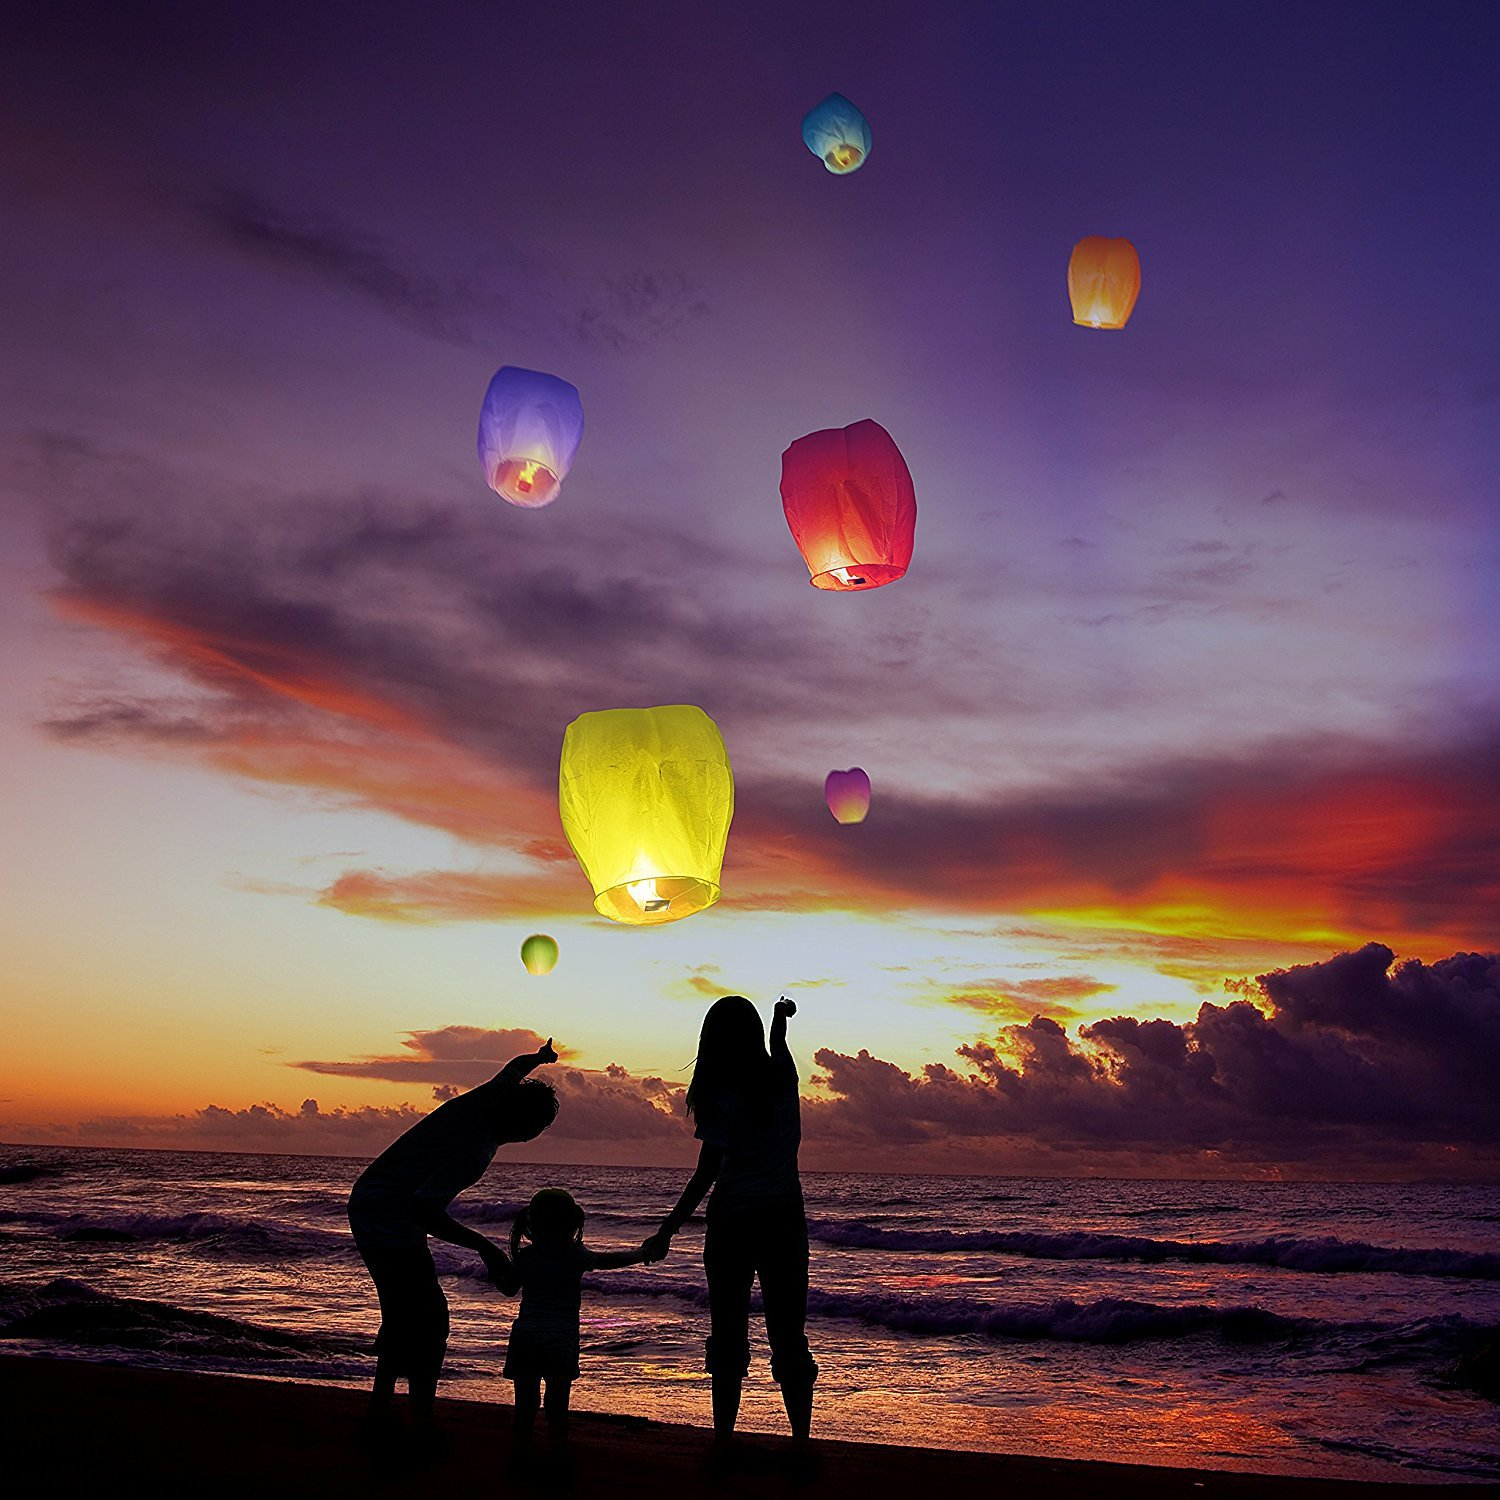 Nuluphu Sky Lanterns 10-Pack, Fully Assembled and100% Biodegradable (No Metal Wire),for Any Birthdays, Parties, New Years,Funeral, Memorial Ceremonies, and More (White) by Nuluphu